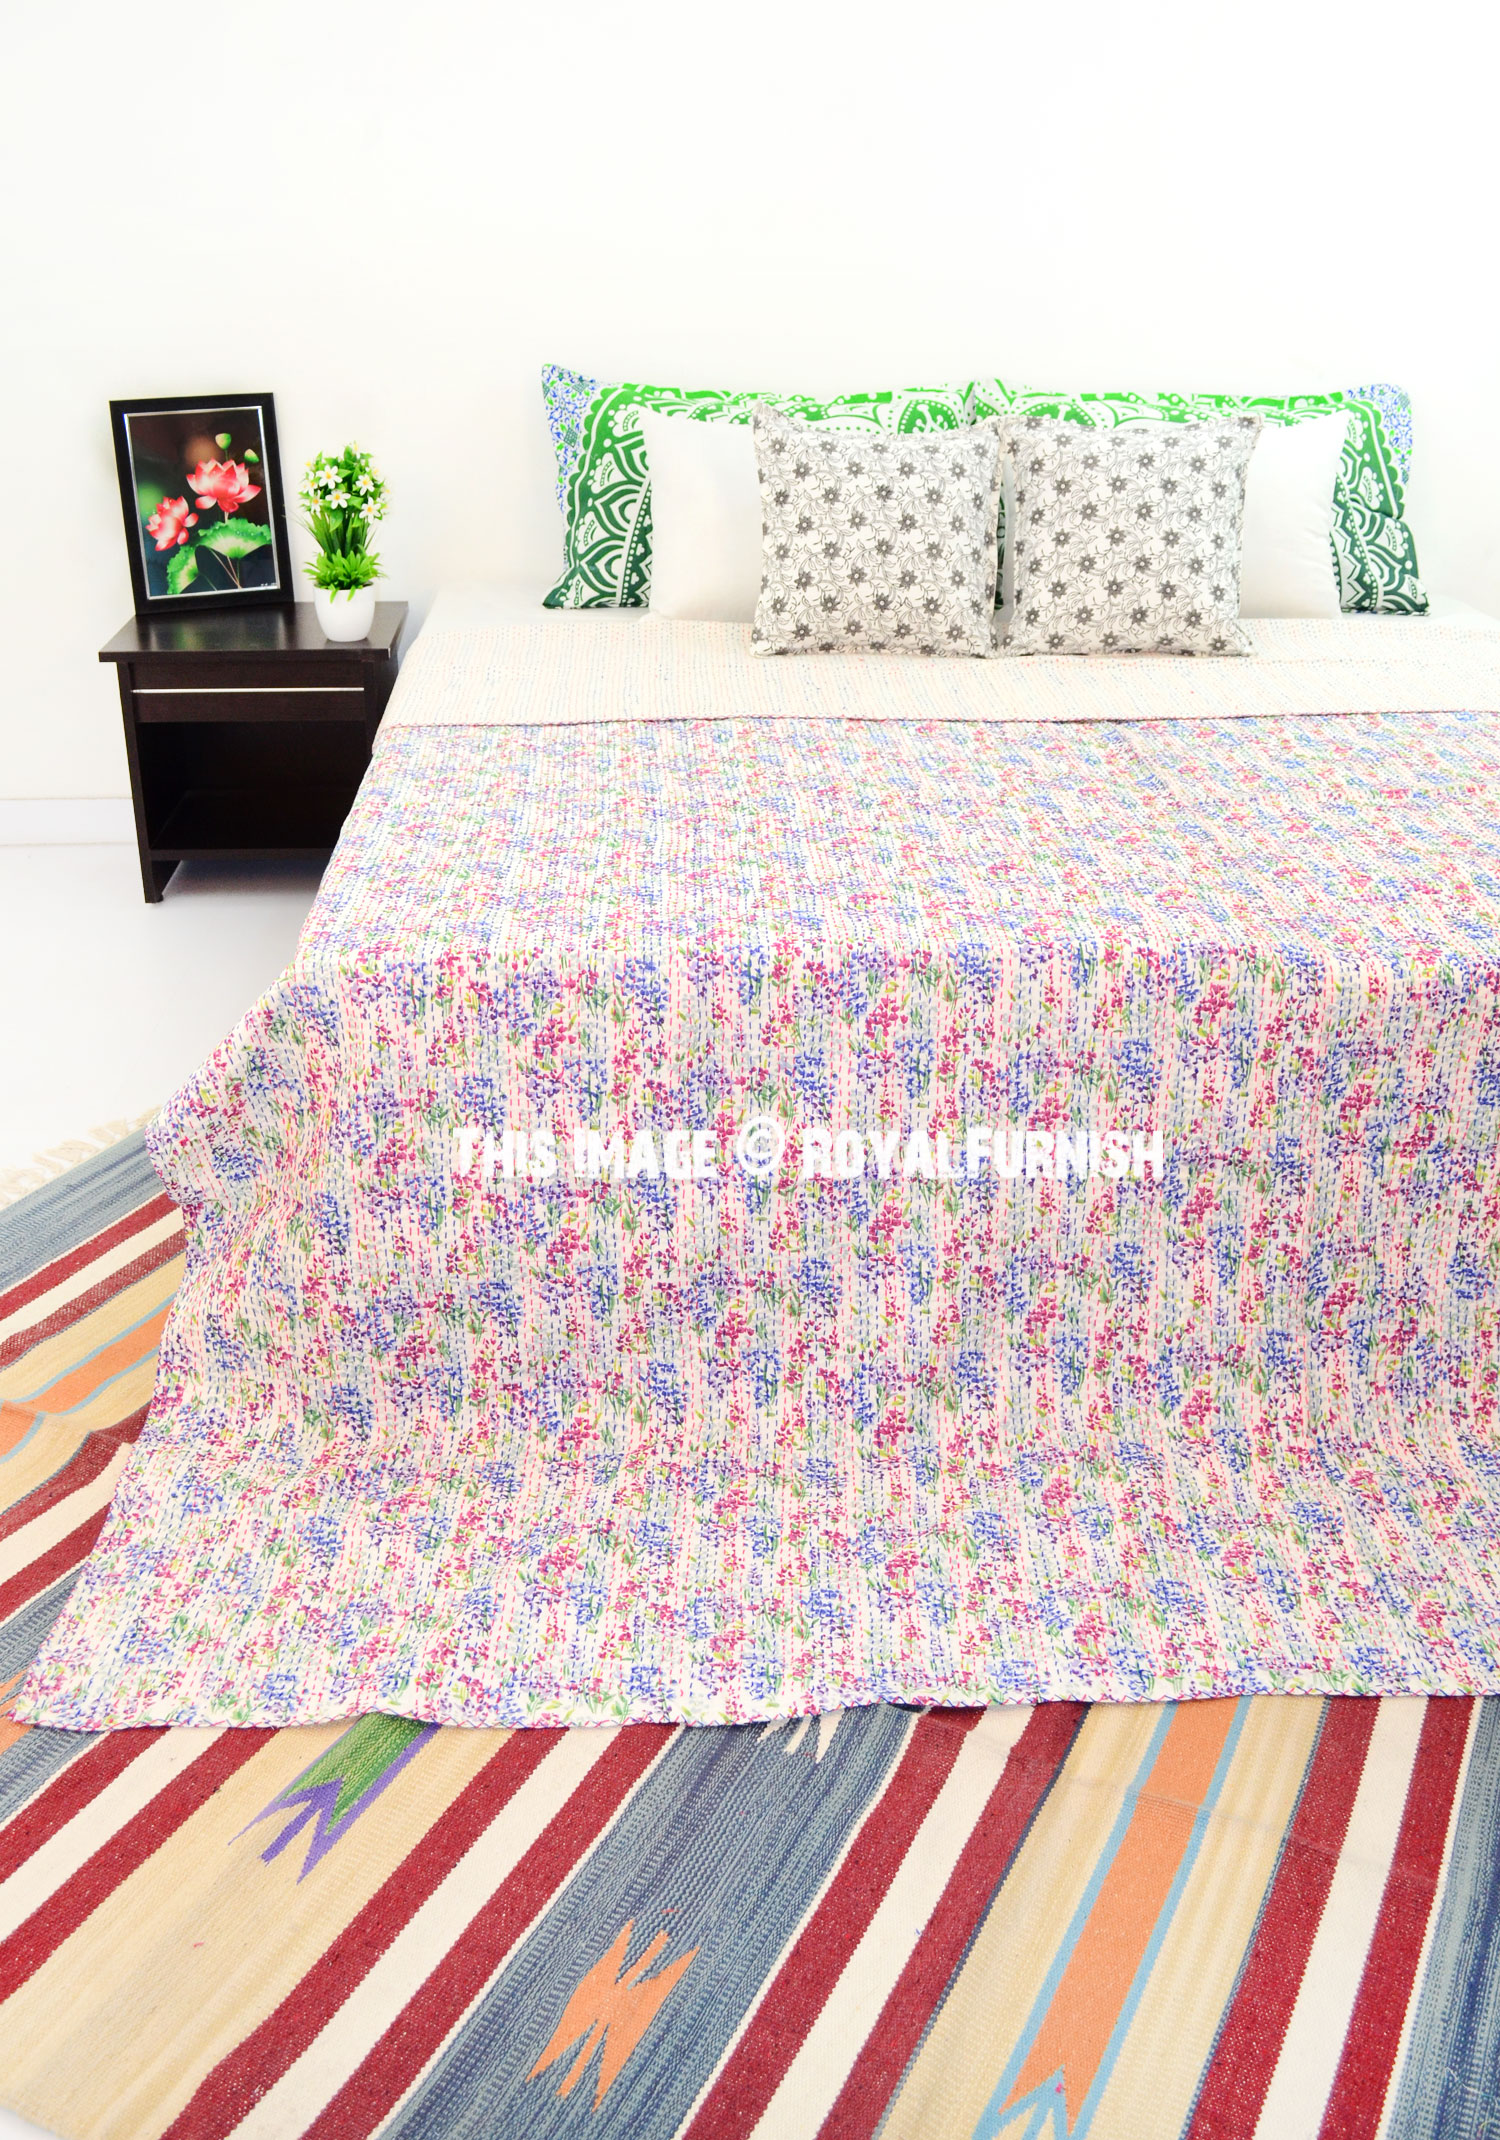 White Small Flower Print Kantha Quilt Blanket Bedding